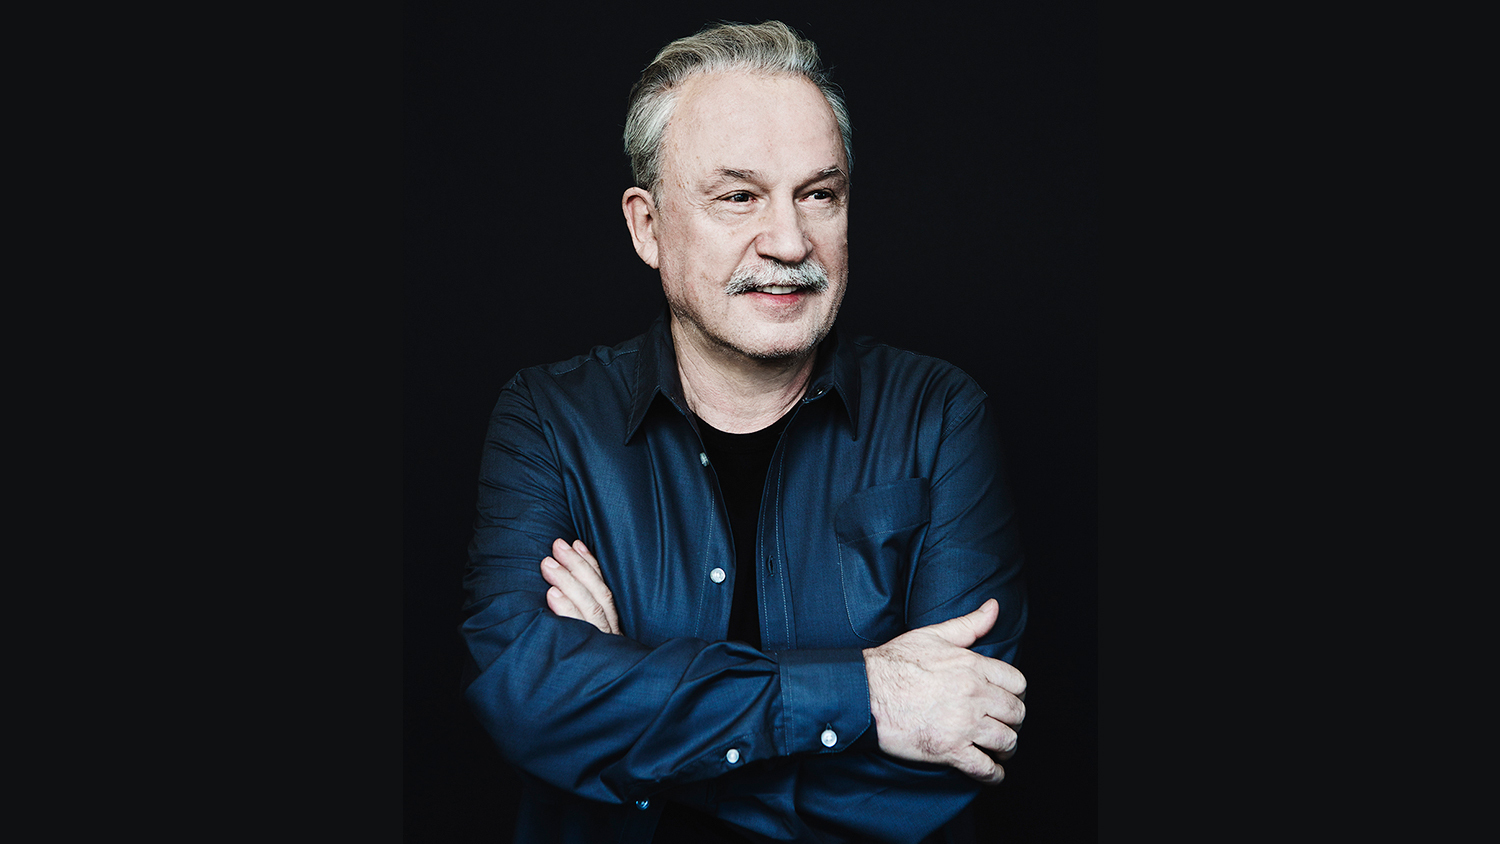 Disco pioneer Giorgio Moroder is back with a new album and an old mustache